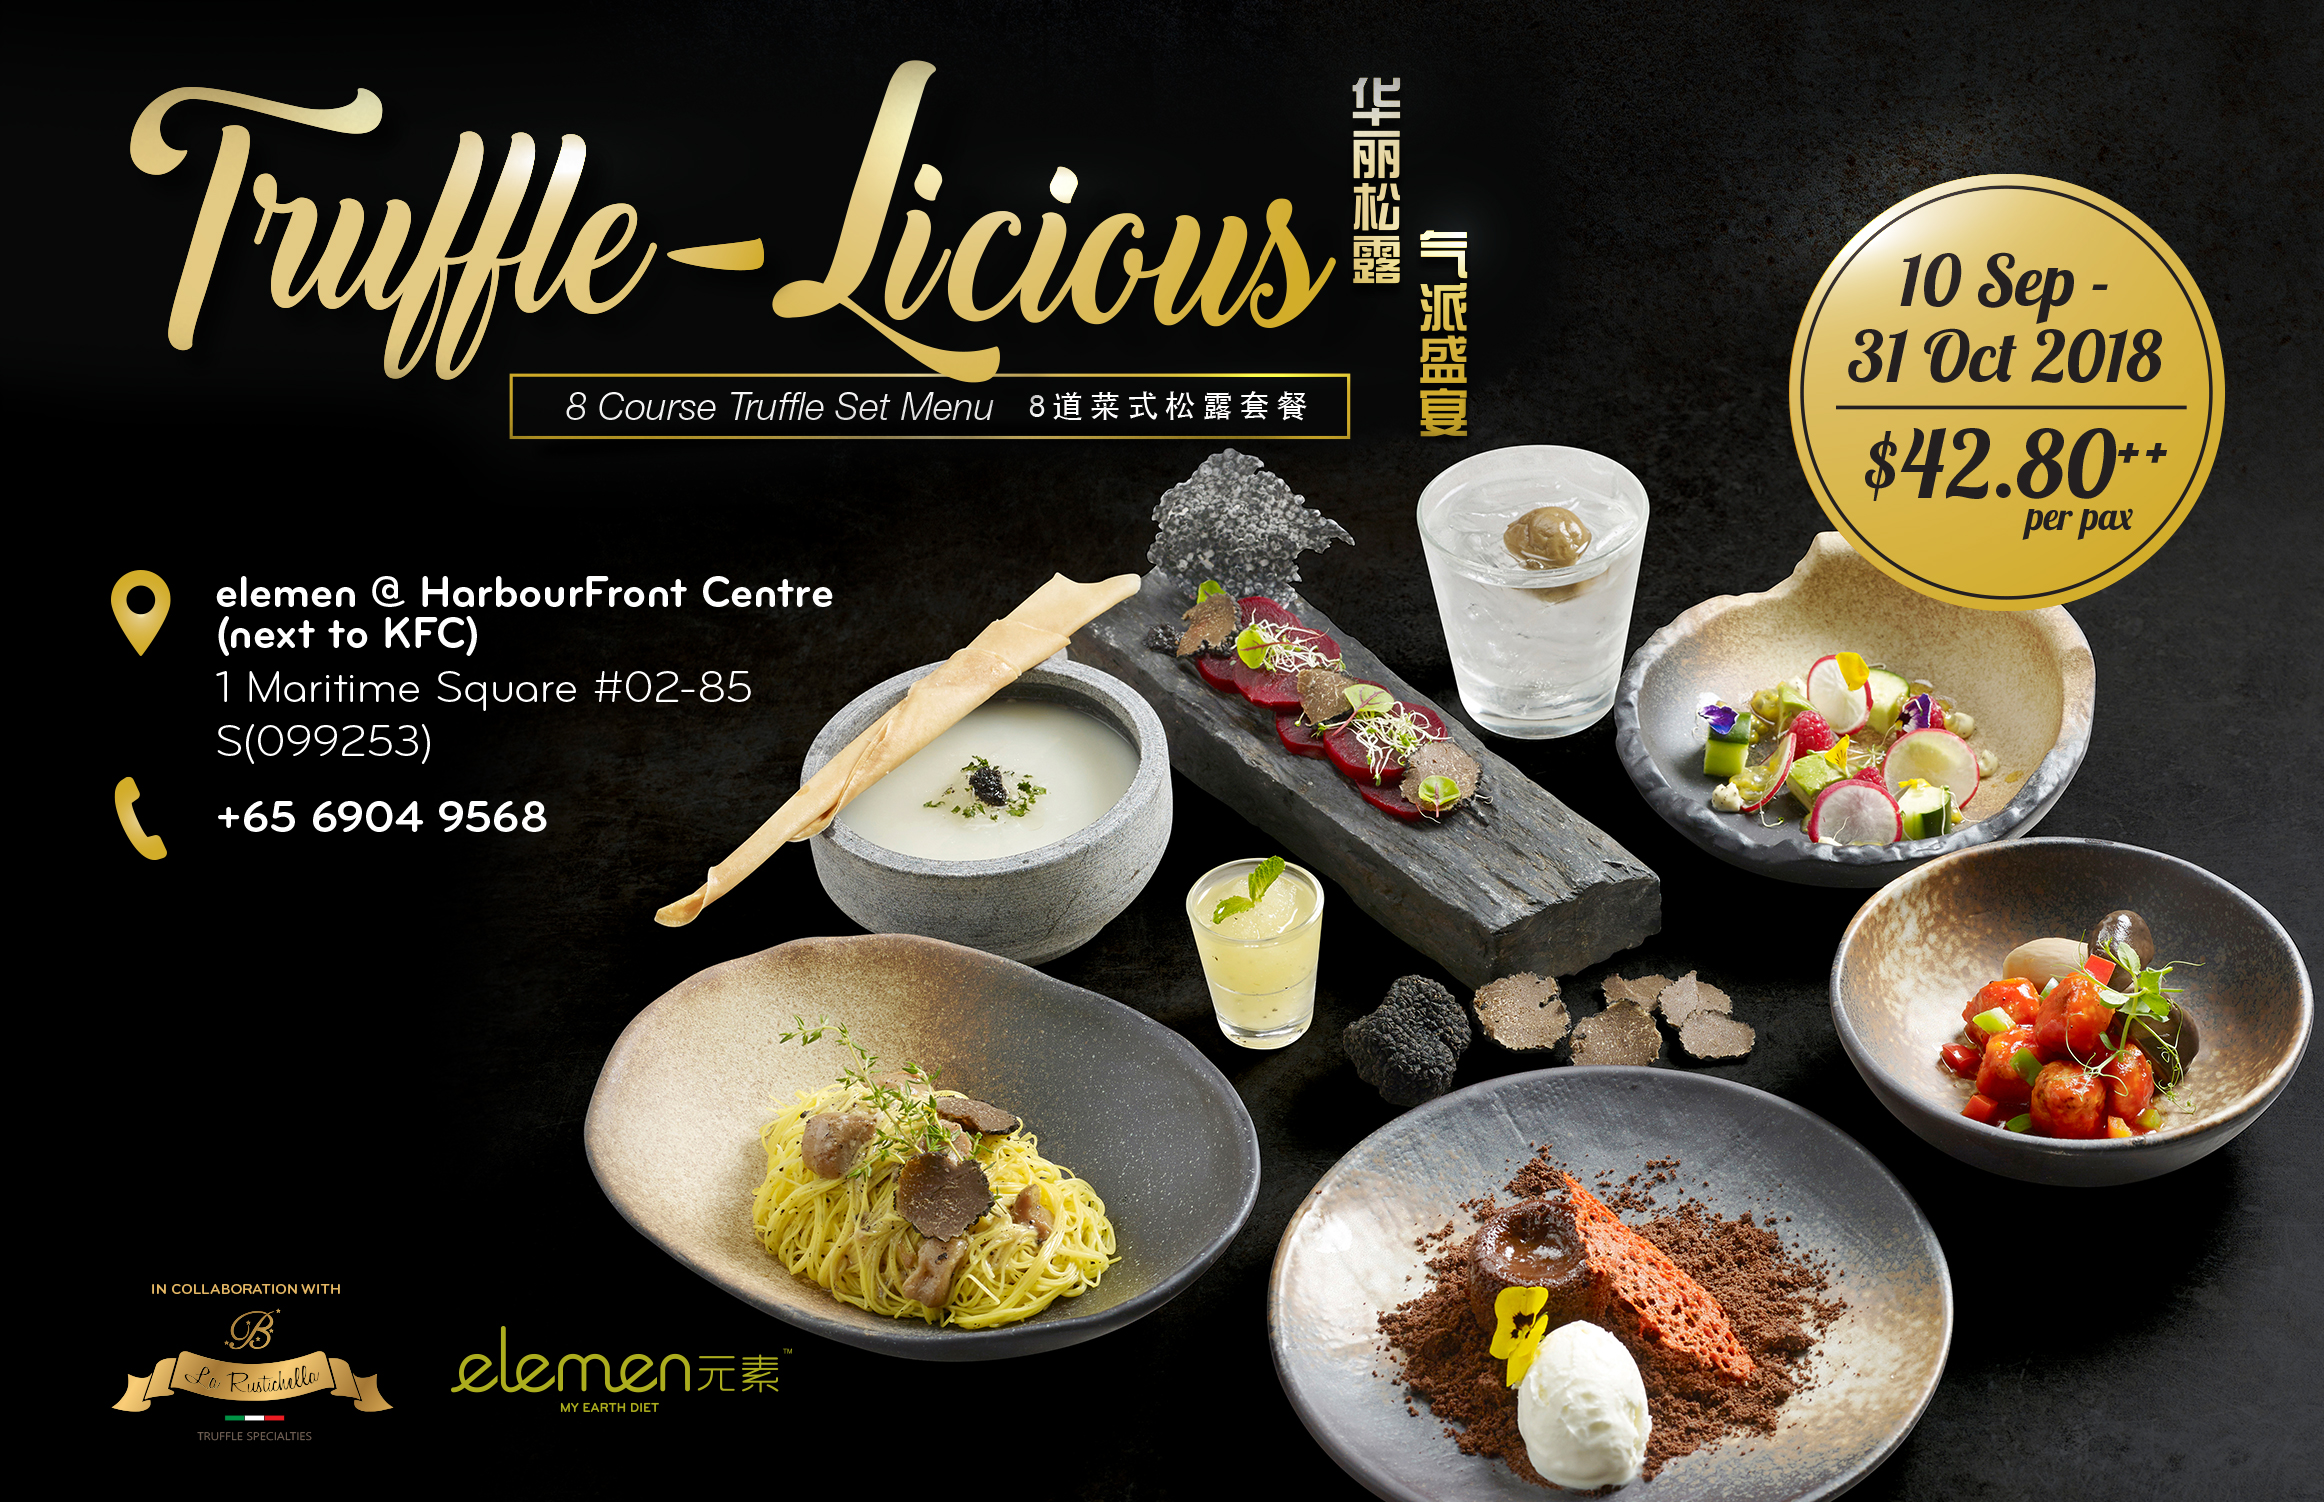 Enjoy an 8-Course Truffle Set Menu for only $42.80++